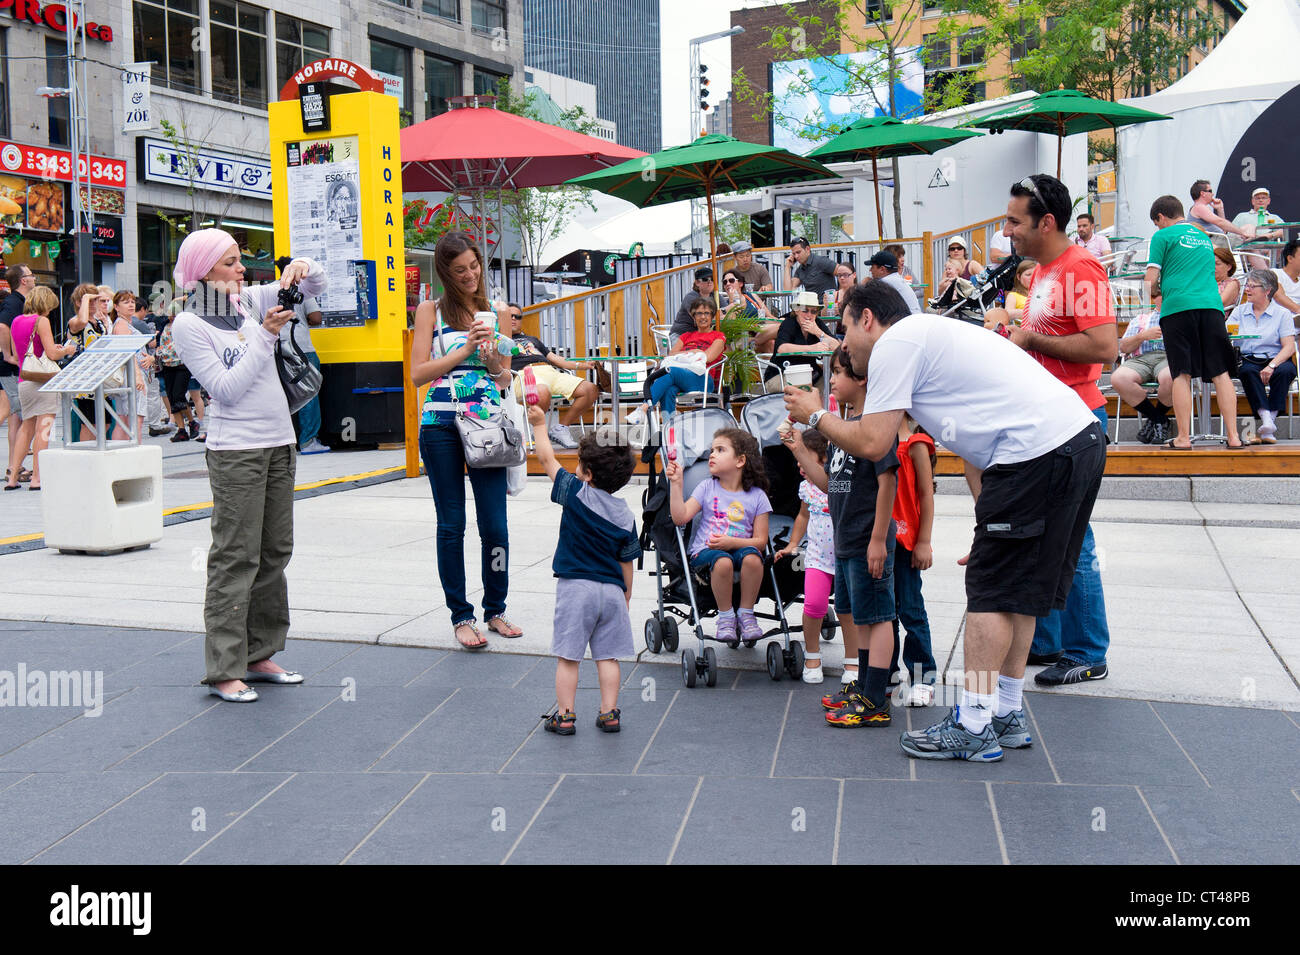 Woman taking a family picture with a digital camera in Montreal during the Jazz Festival. - Stock Image